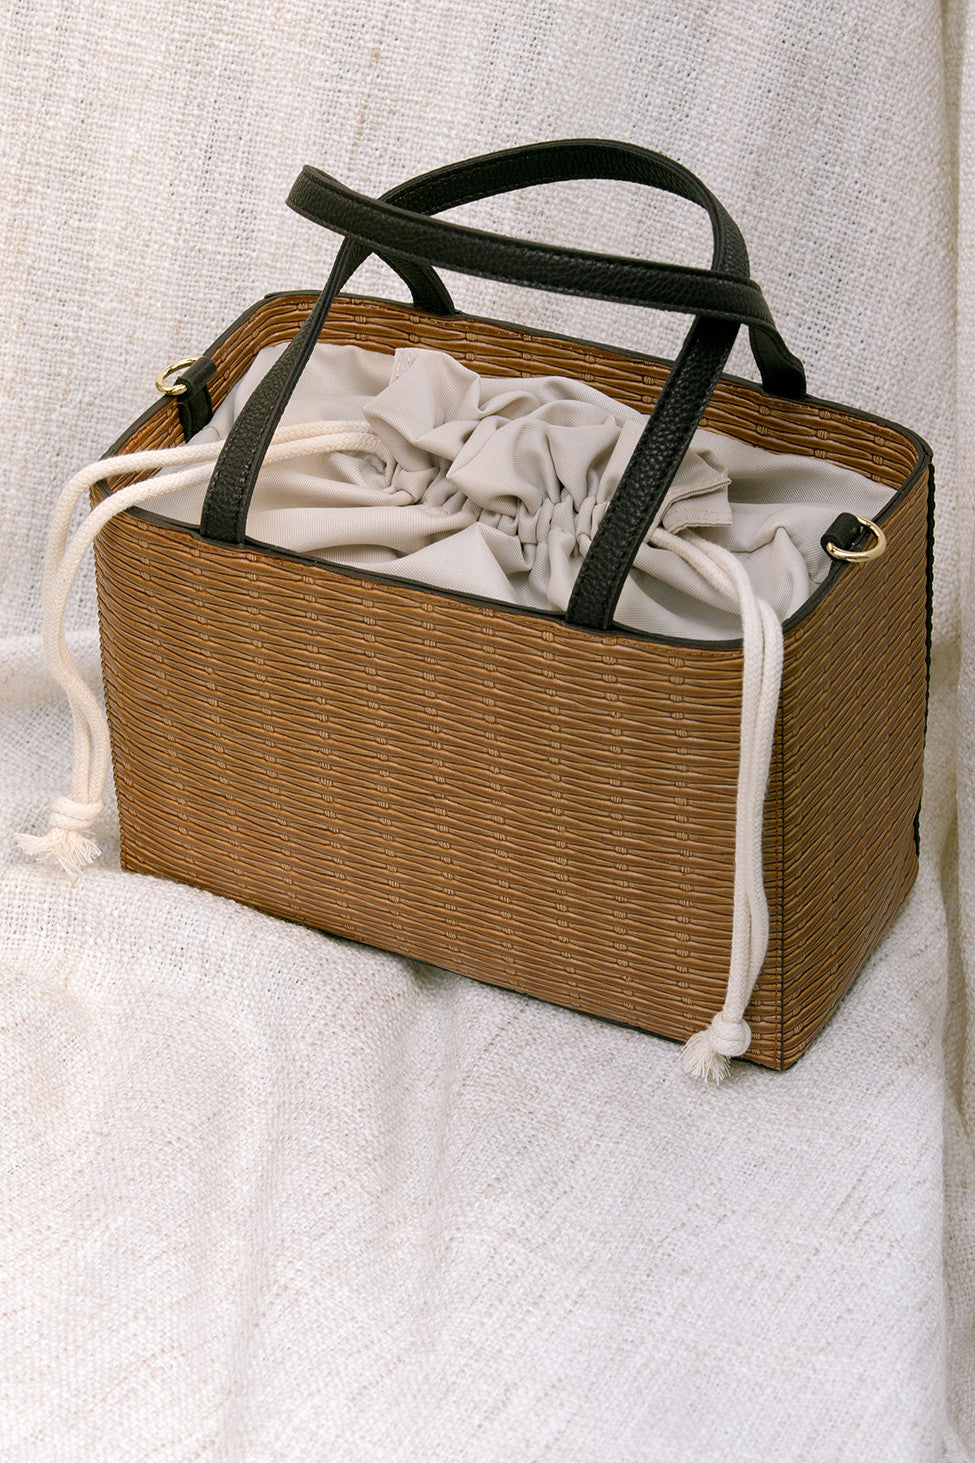 Mamba bag in Brown. Woven straw basket bag with fabric insert. Top handles. Detachable shoulder straps.